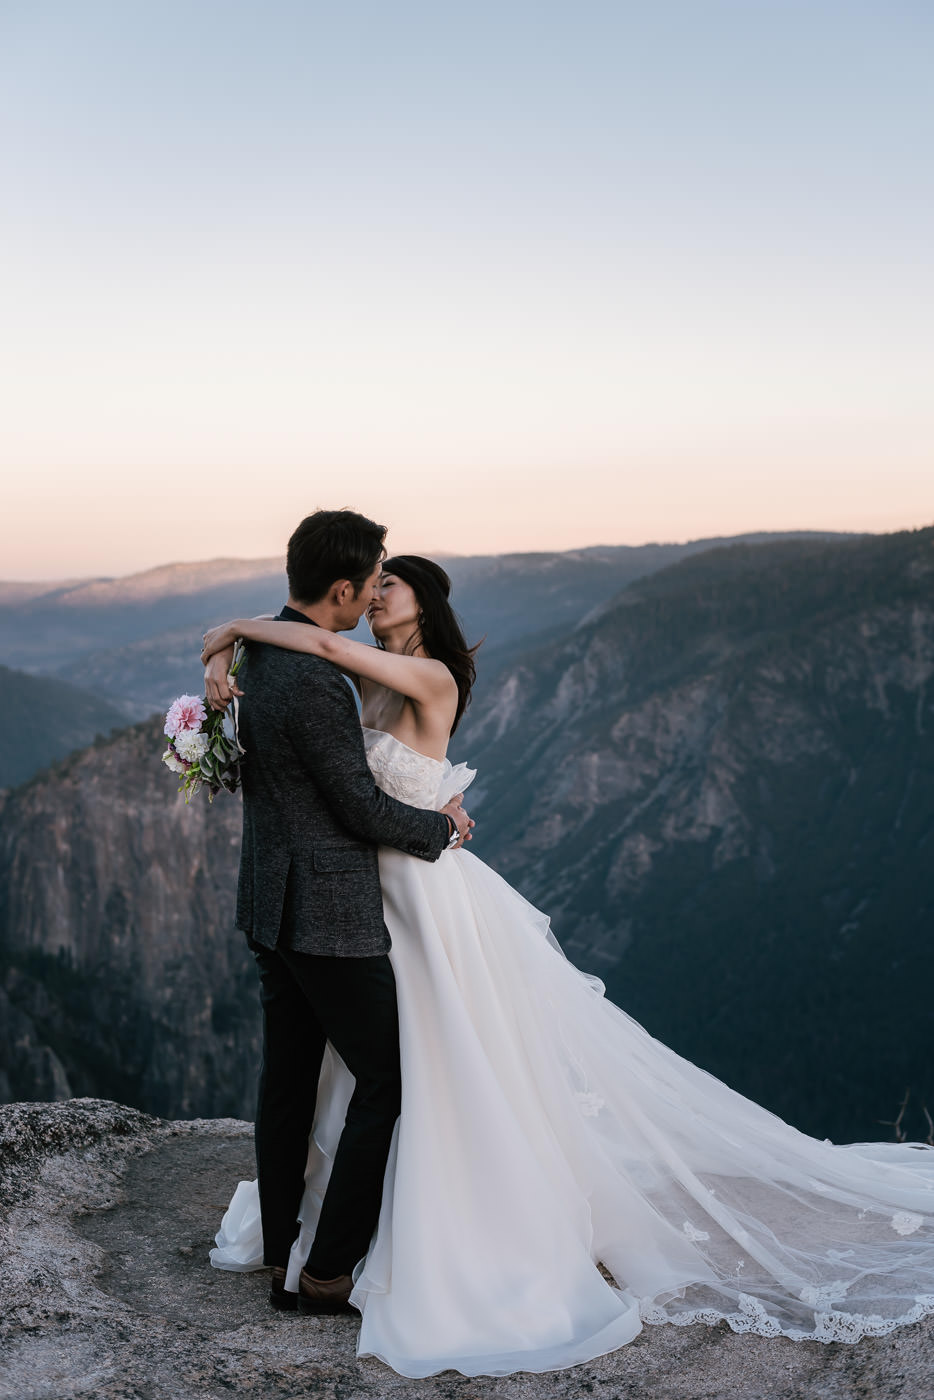 Yosemite destination wedding photography for adventurous couples in love.